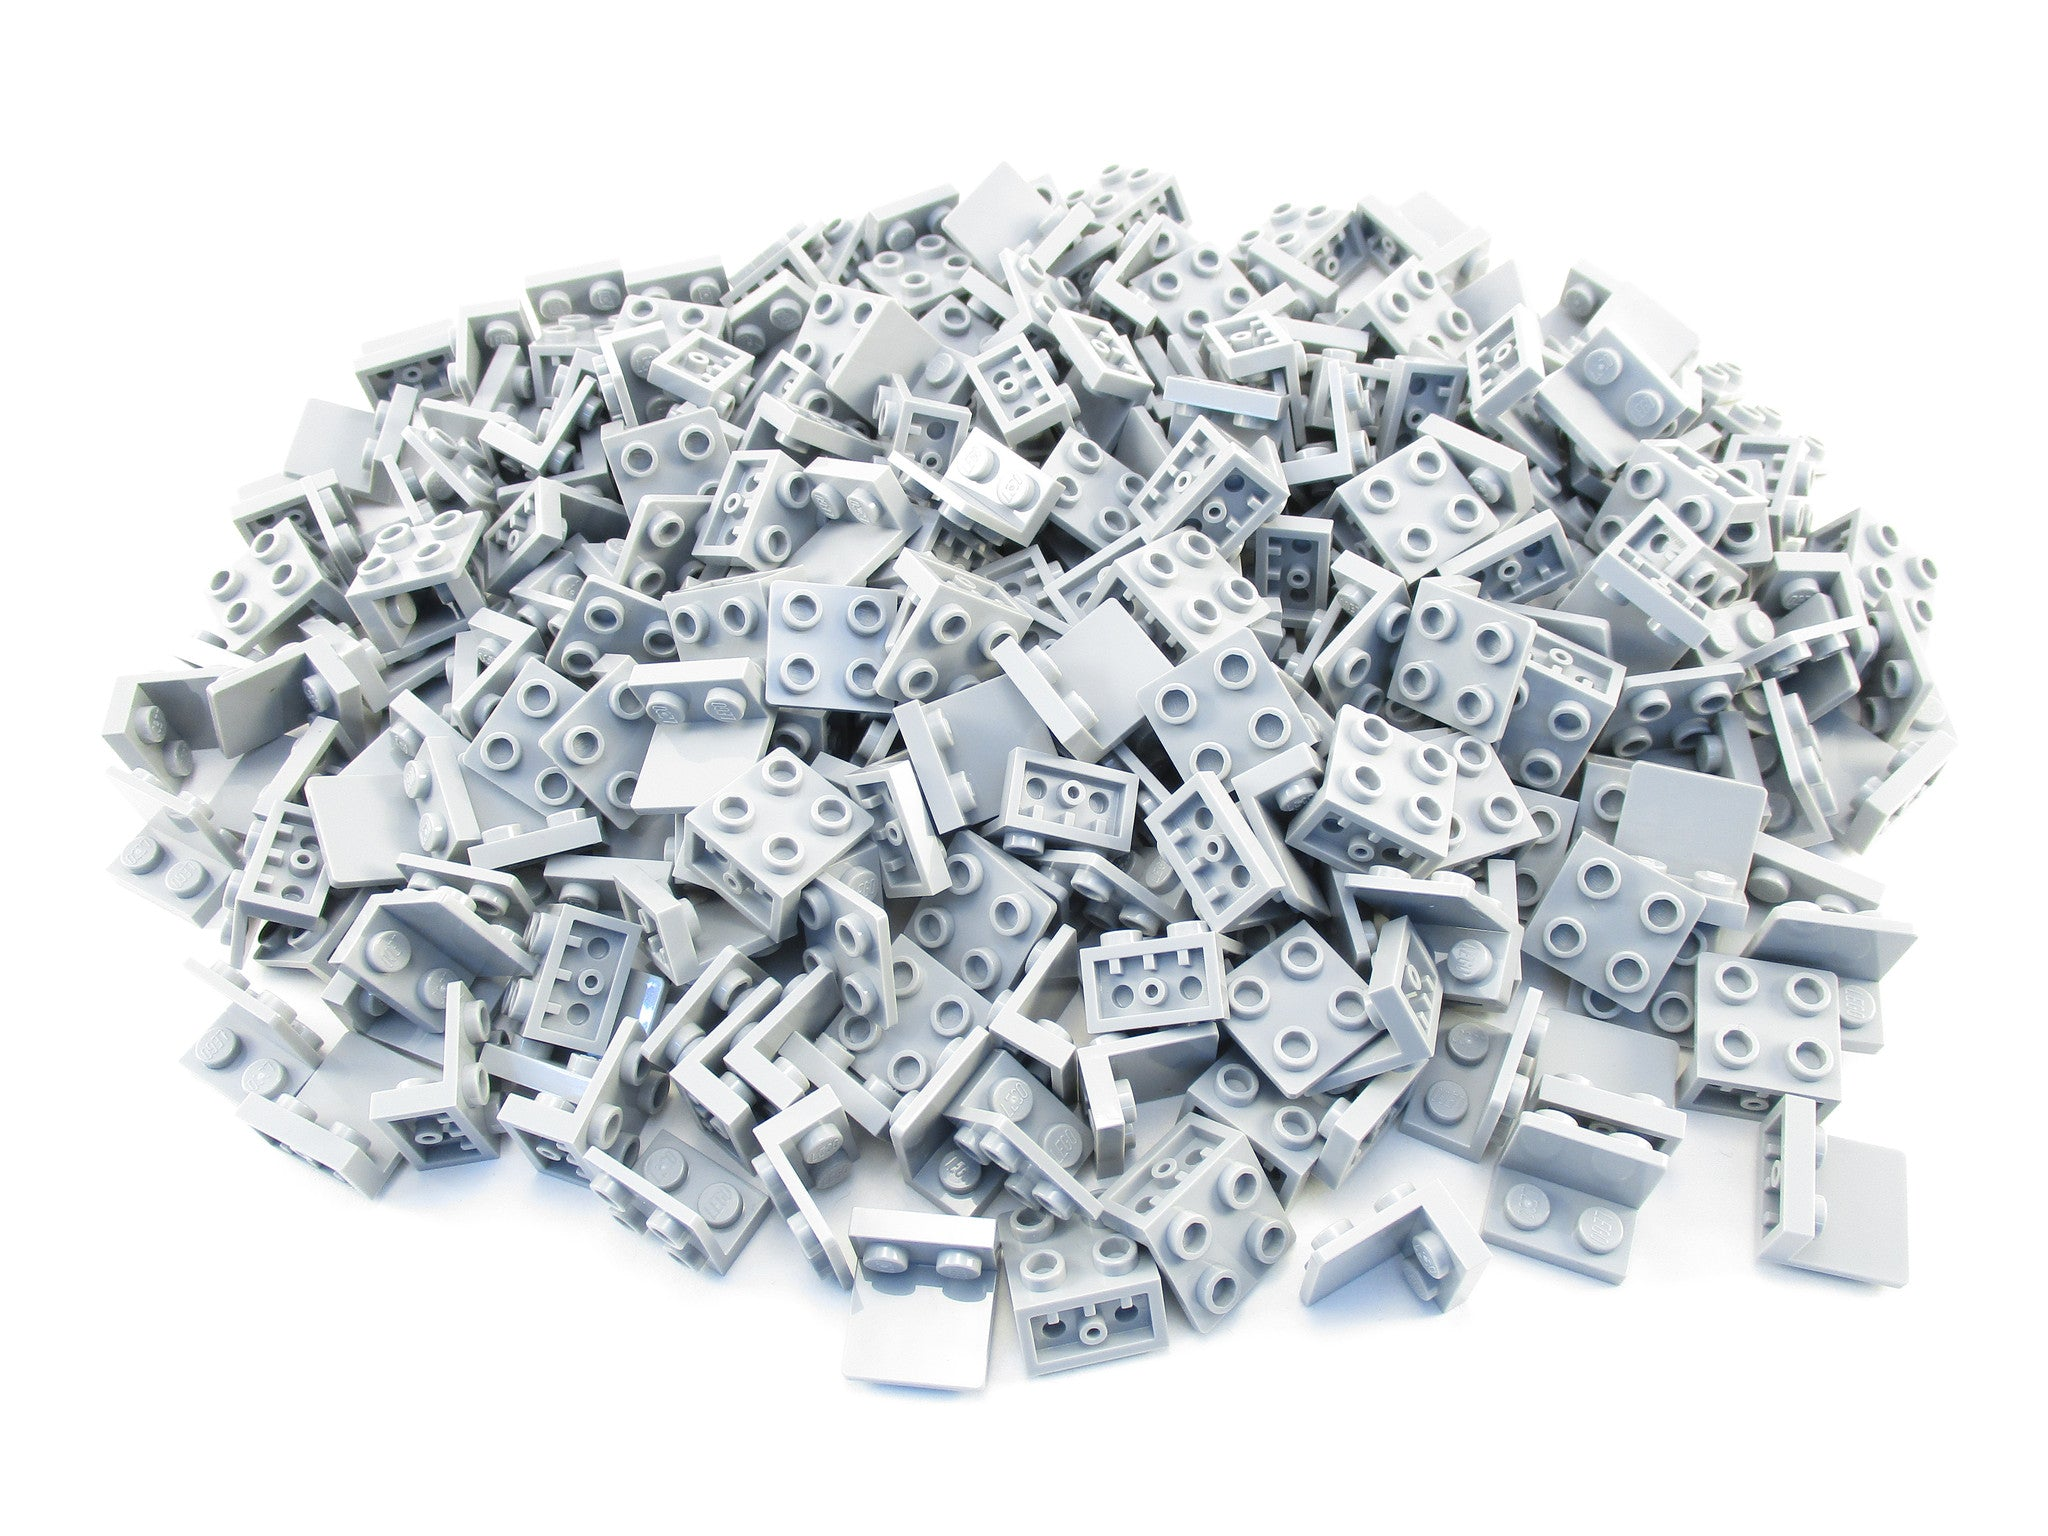 LEGO Light Bluish Gray Bracket 1x2 - 2x2 Inverted Lot of 100 Parts Pieces 99207 Grey